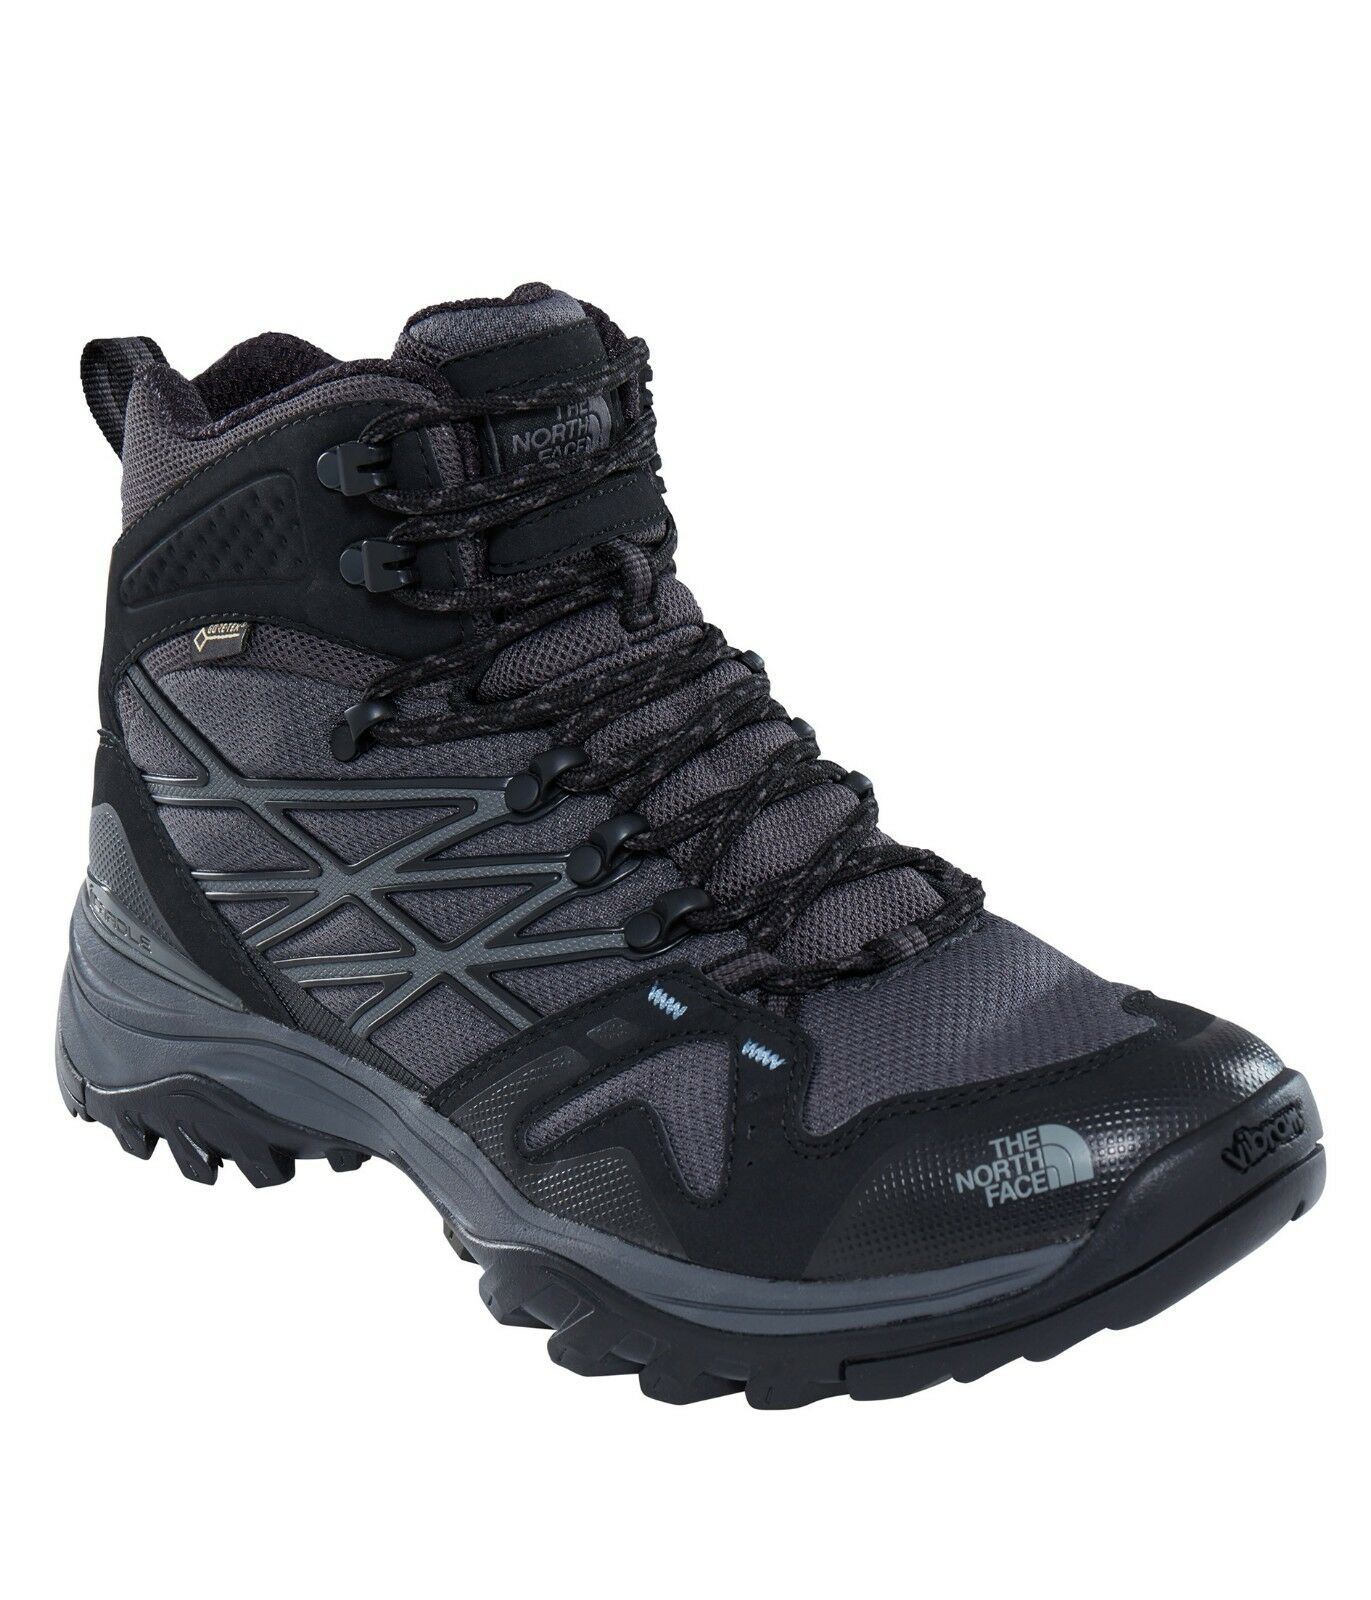 The North Face M HEDGEHOG FASTPACK MILIEU GTX Chaussures Hommes